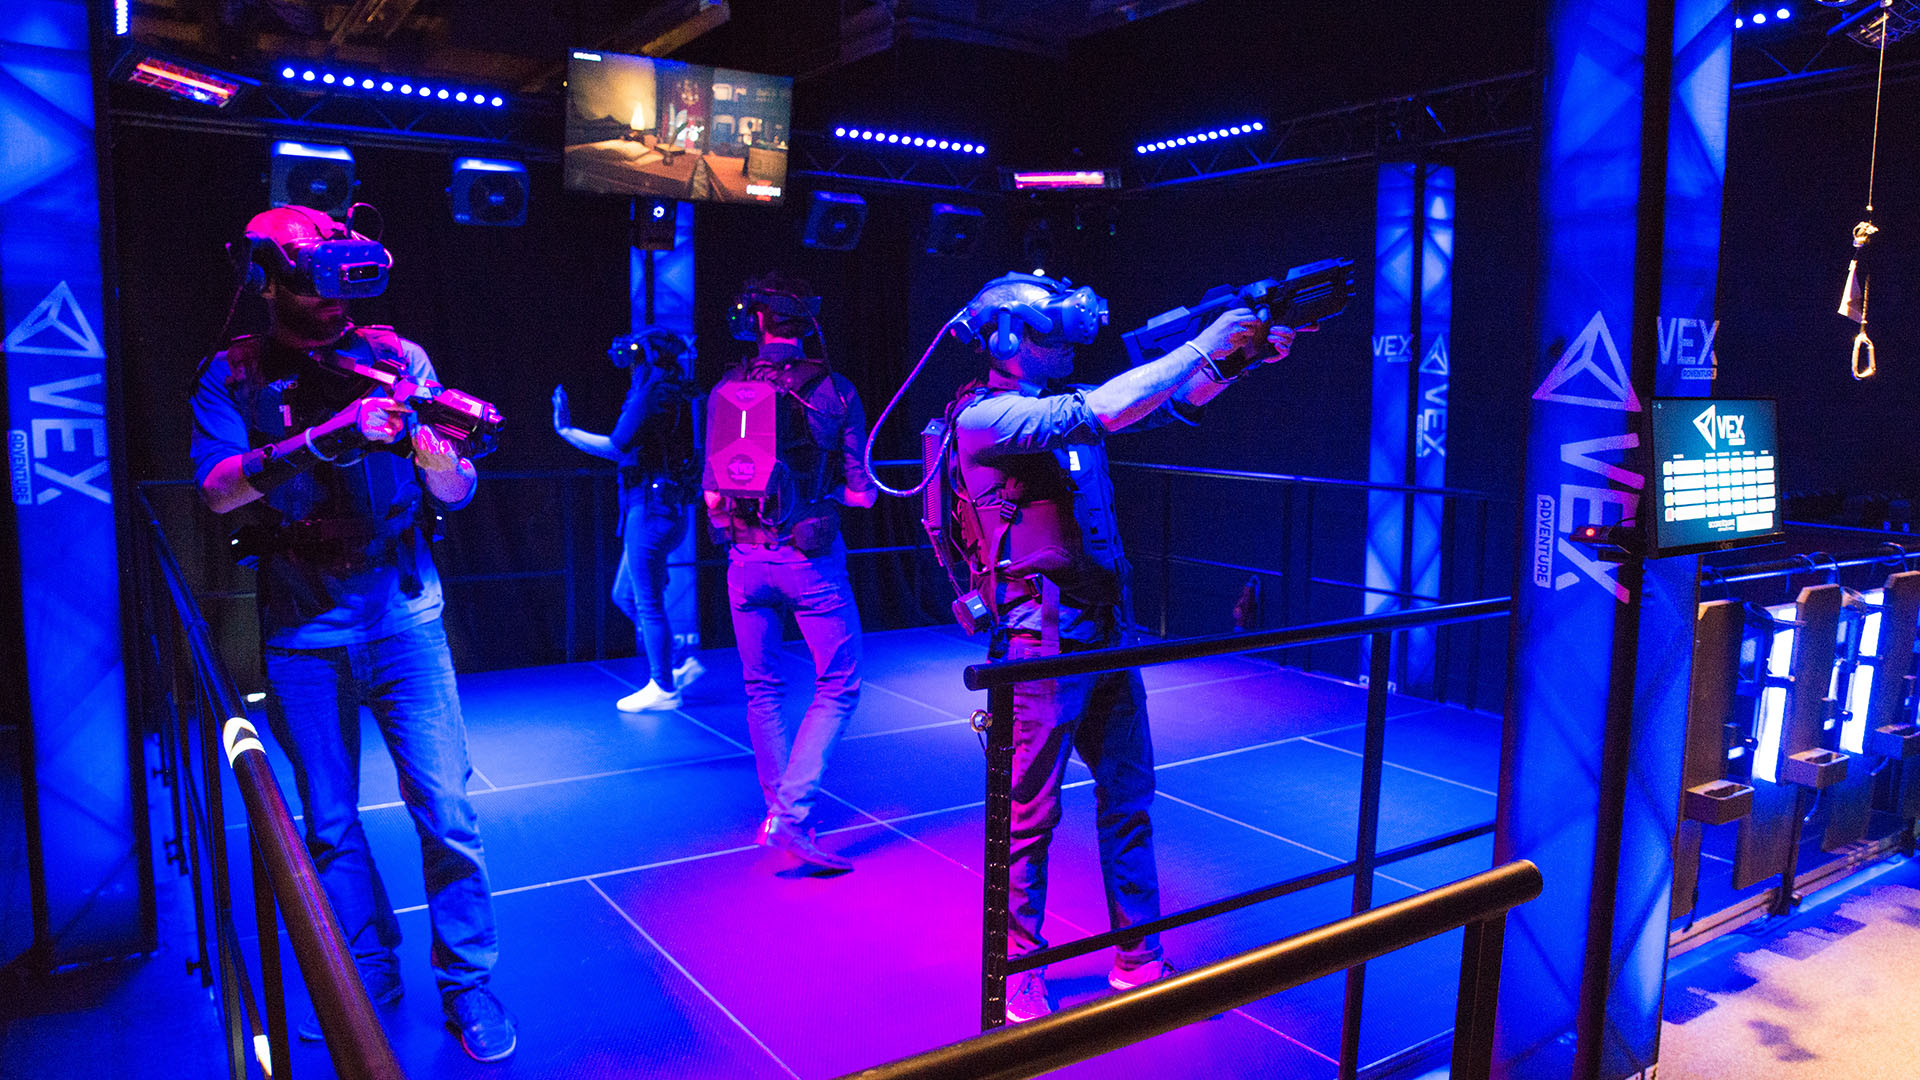 The VEX Adventure offers the most immersive experience in location-based virtual reality